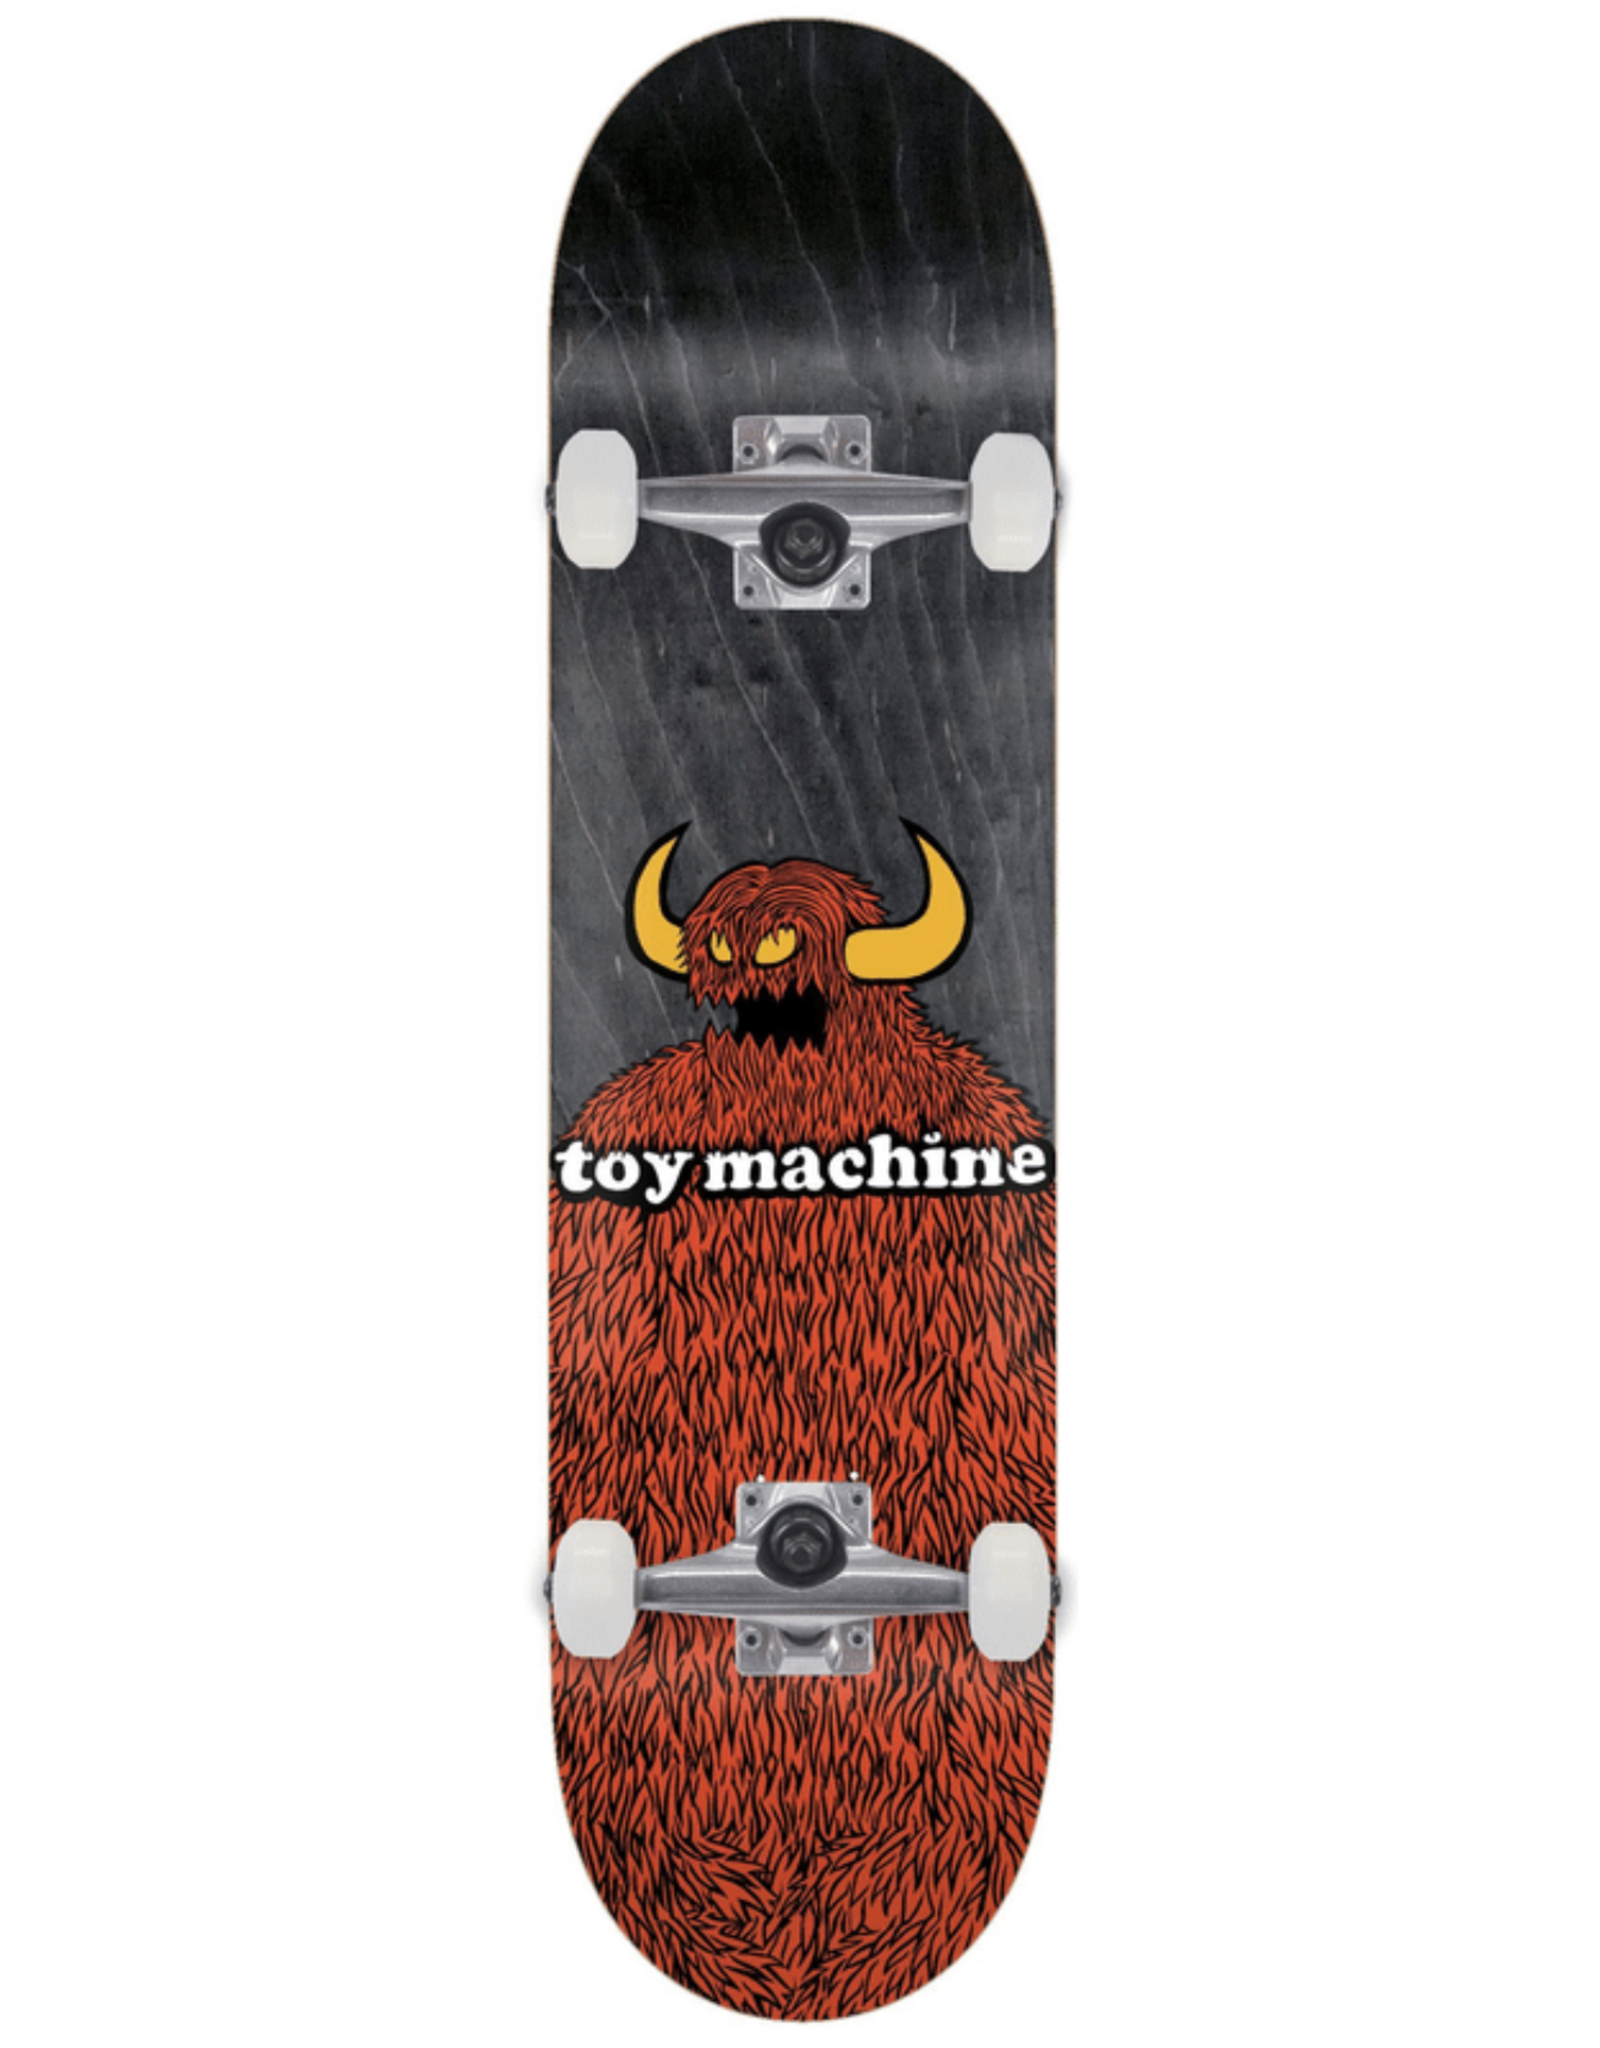 Toy Machine TOY MACHINE COMPLETE FURRY MONSTER